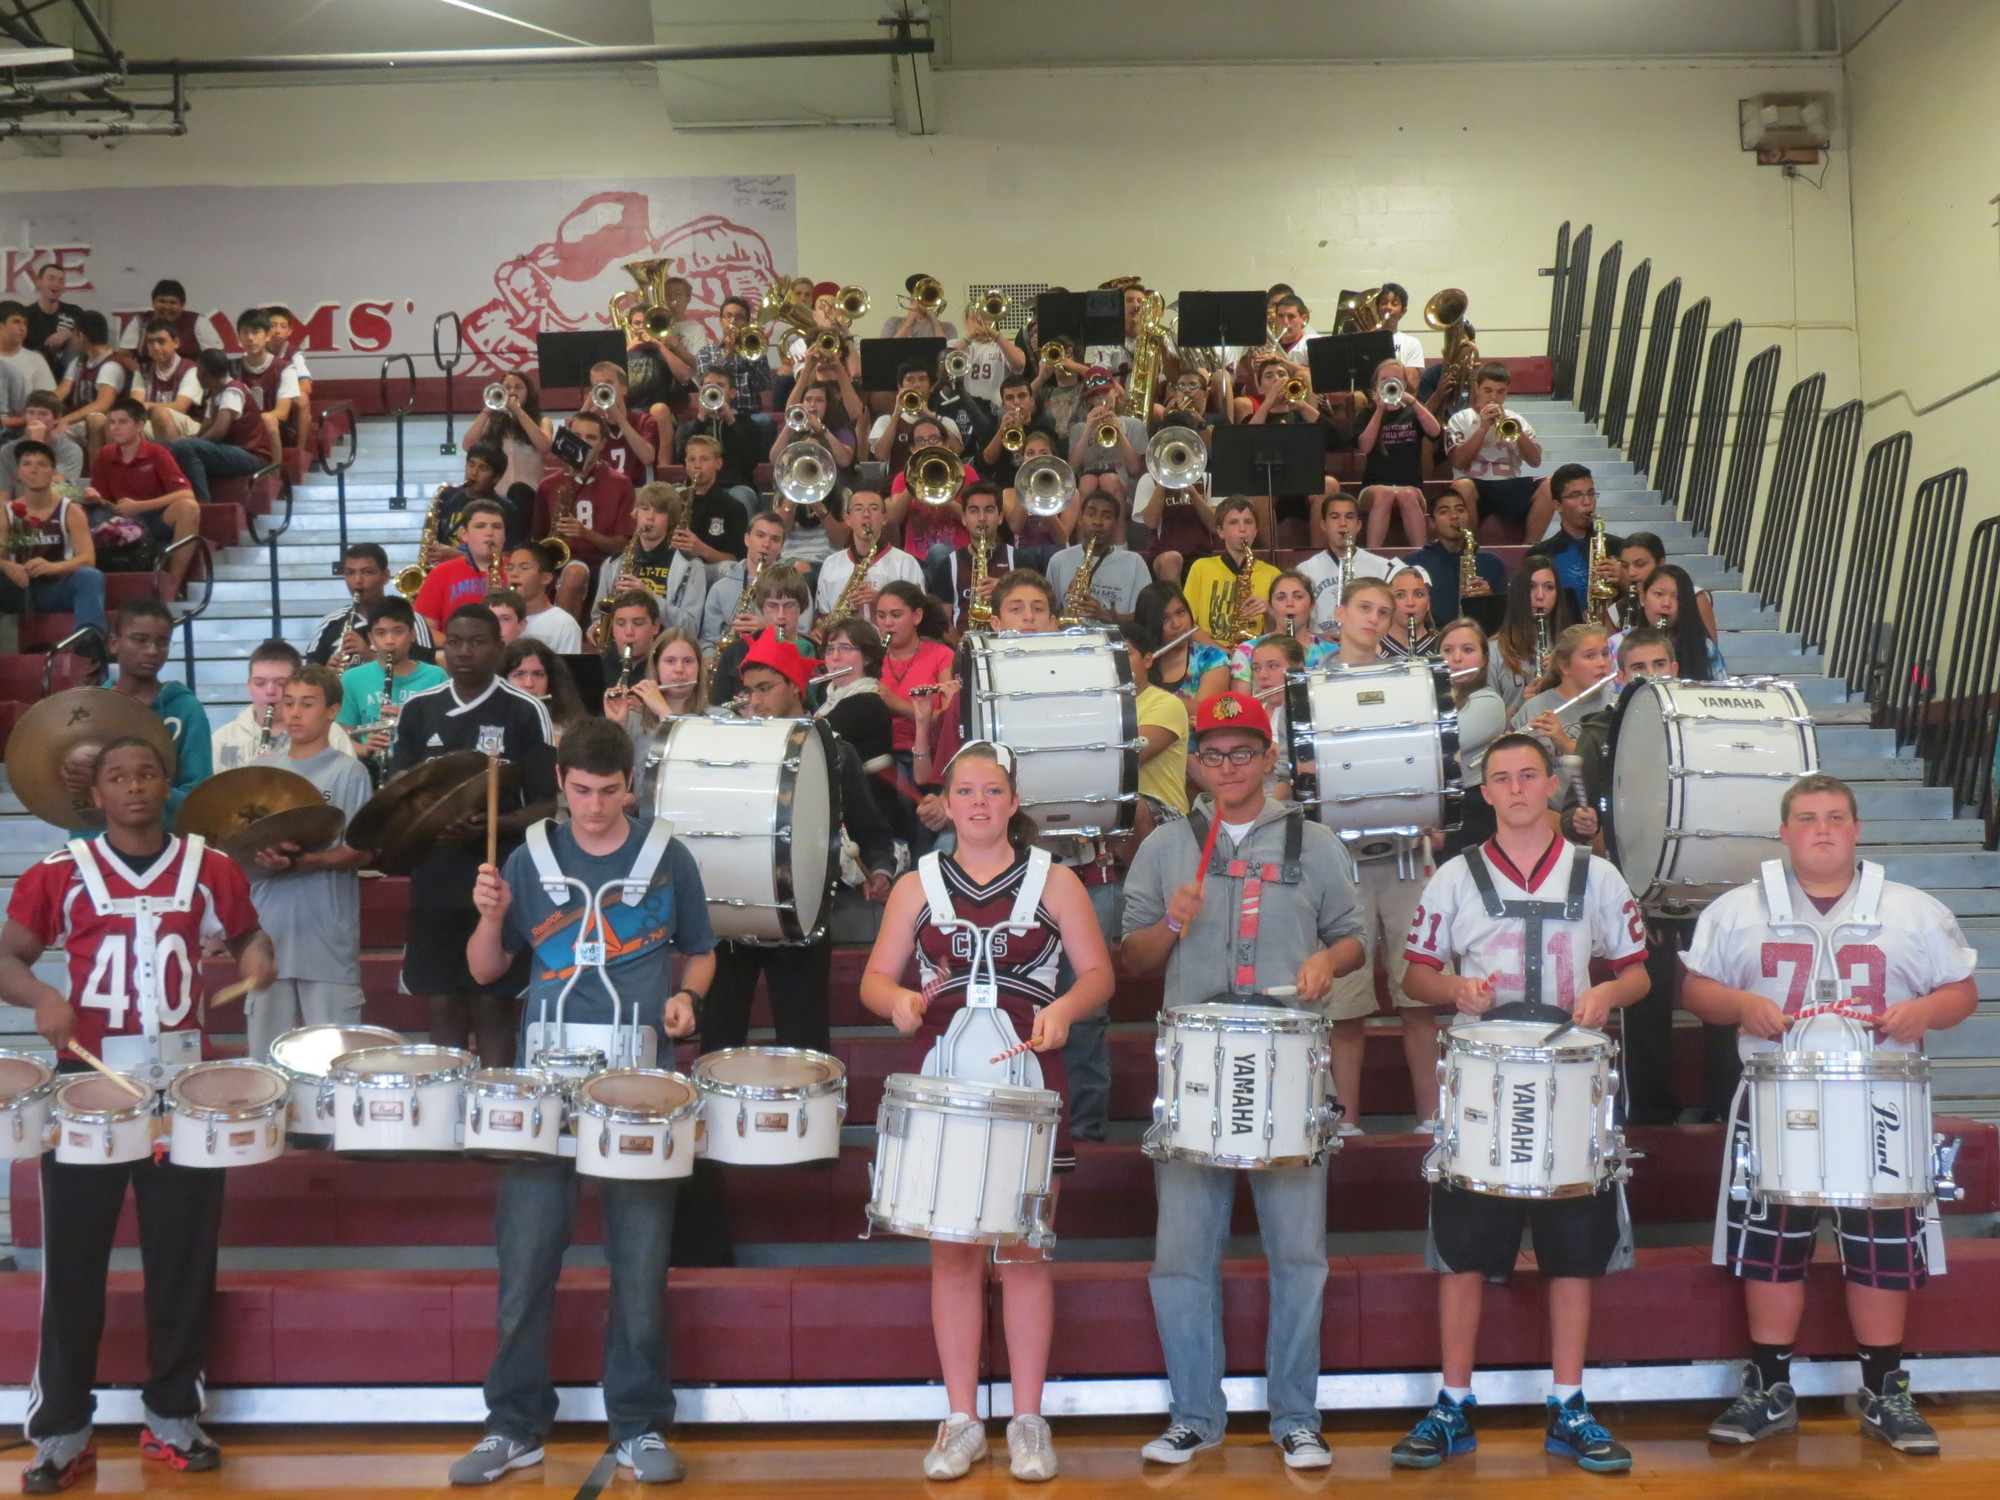 The W.T. Clarke marching band entertained the audience during the school